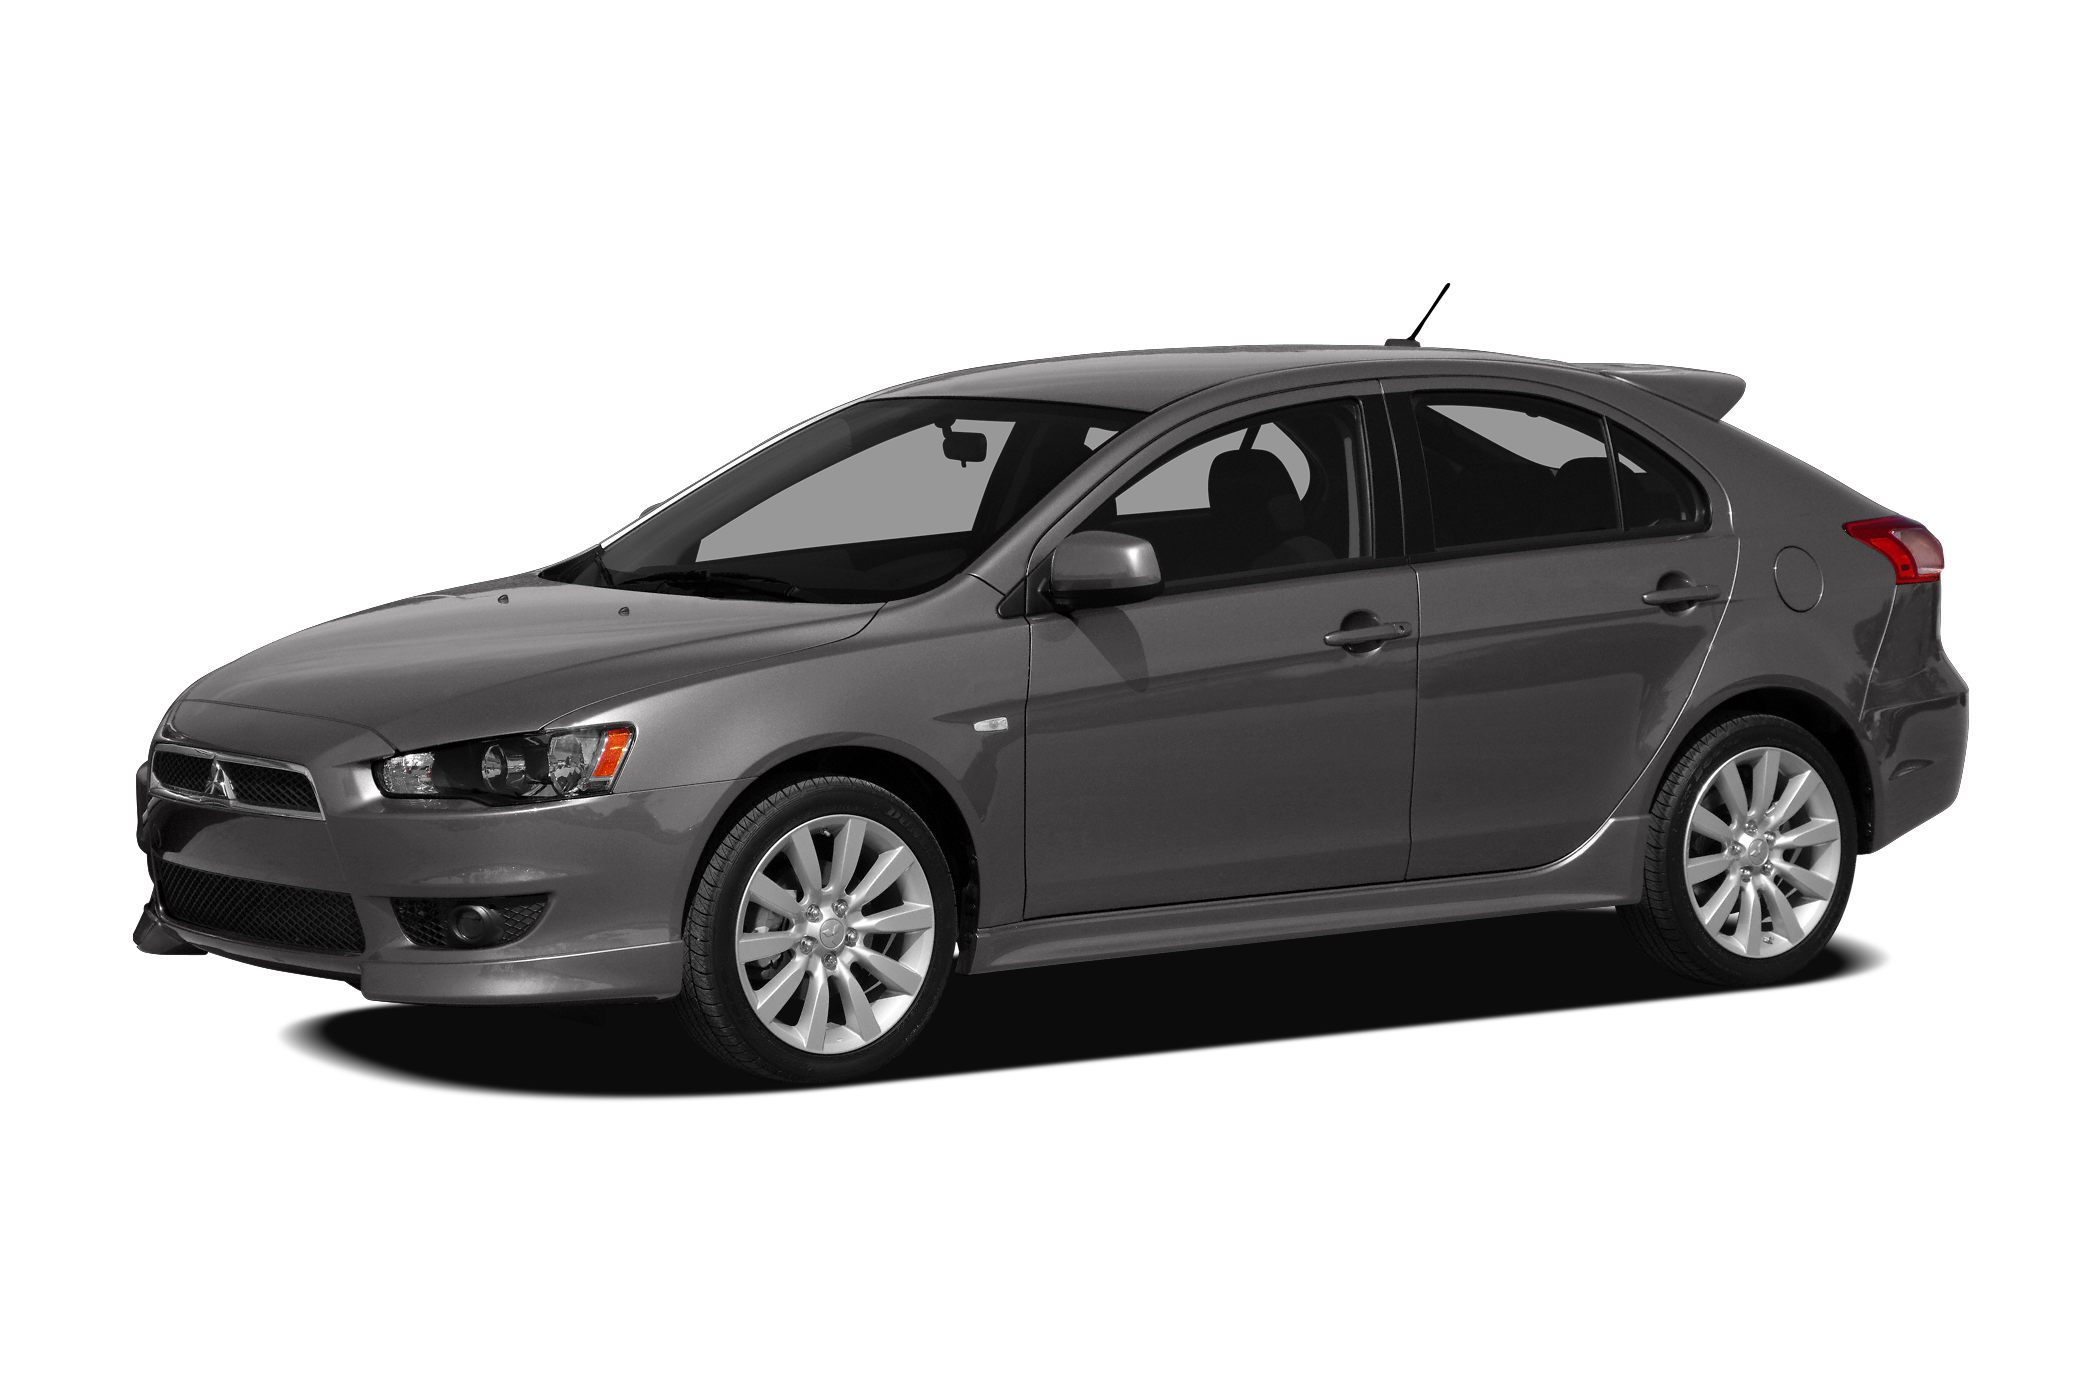 Hatchback Mitsubishi Lancer. Reviews of owners and not only